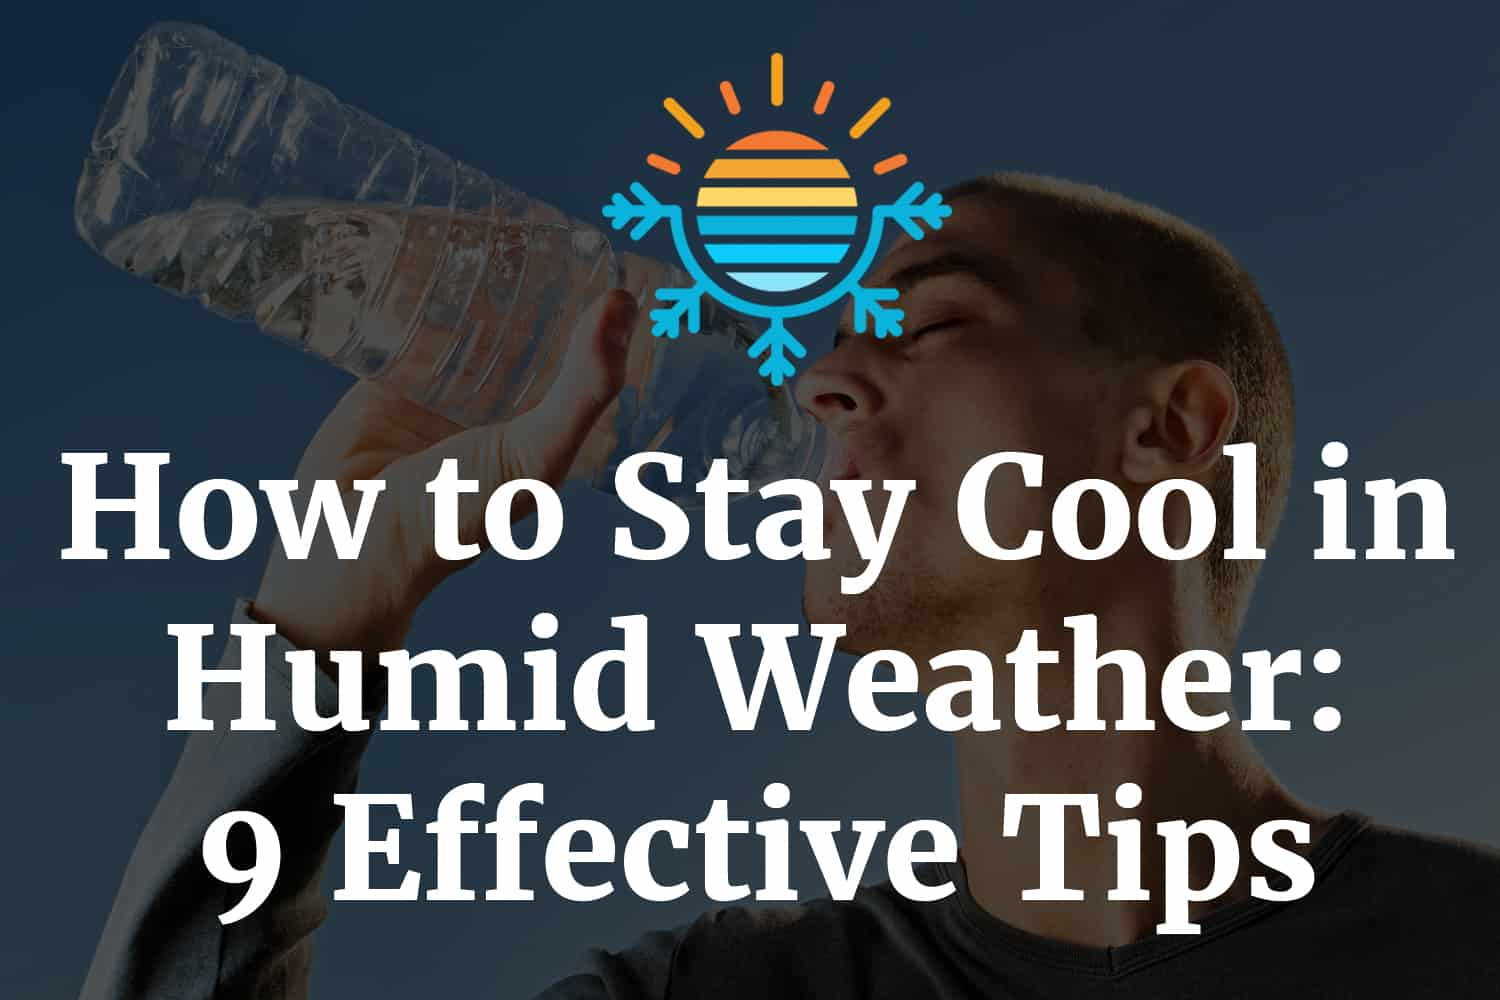 How to Stay Cool in Humid Weather: 9 Effective Tips